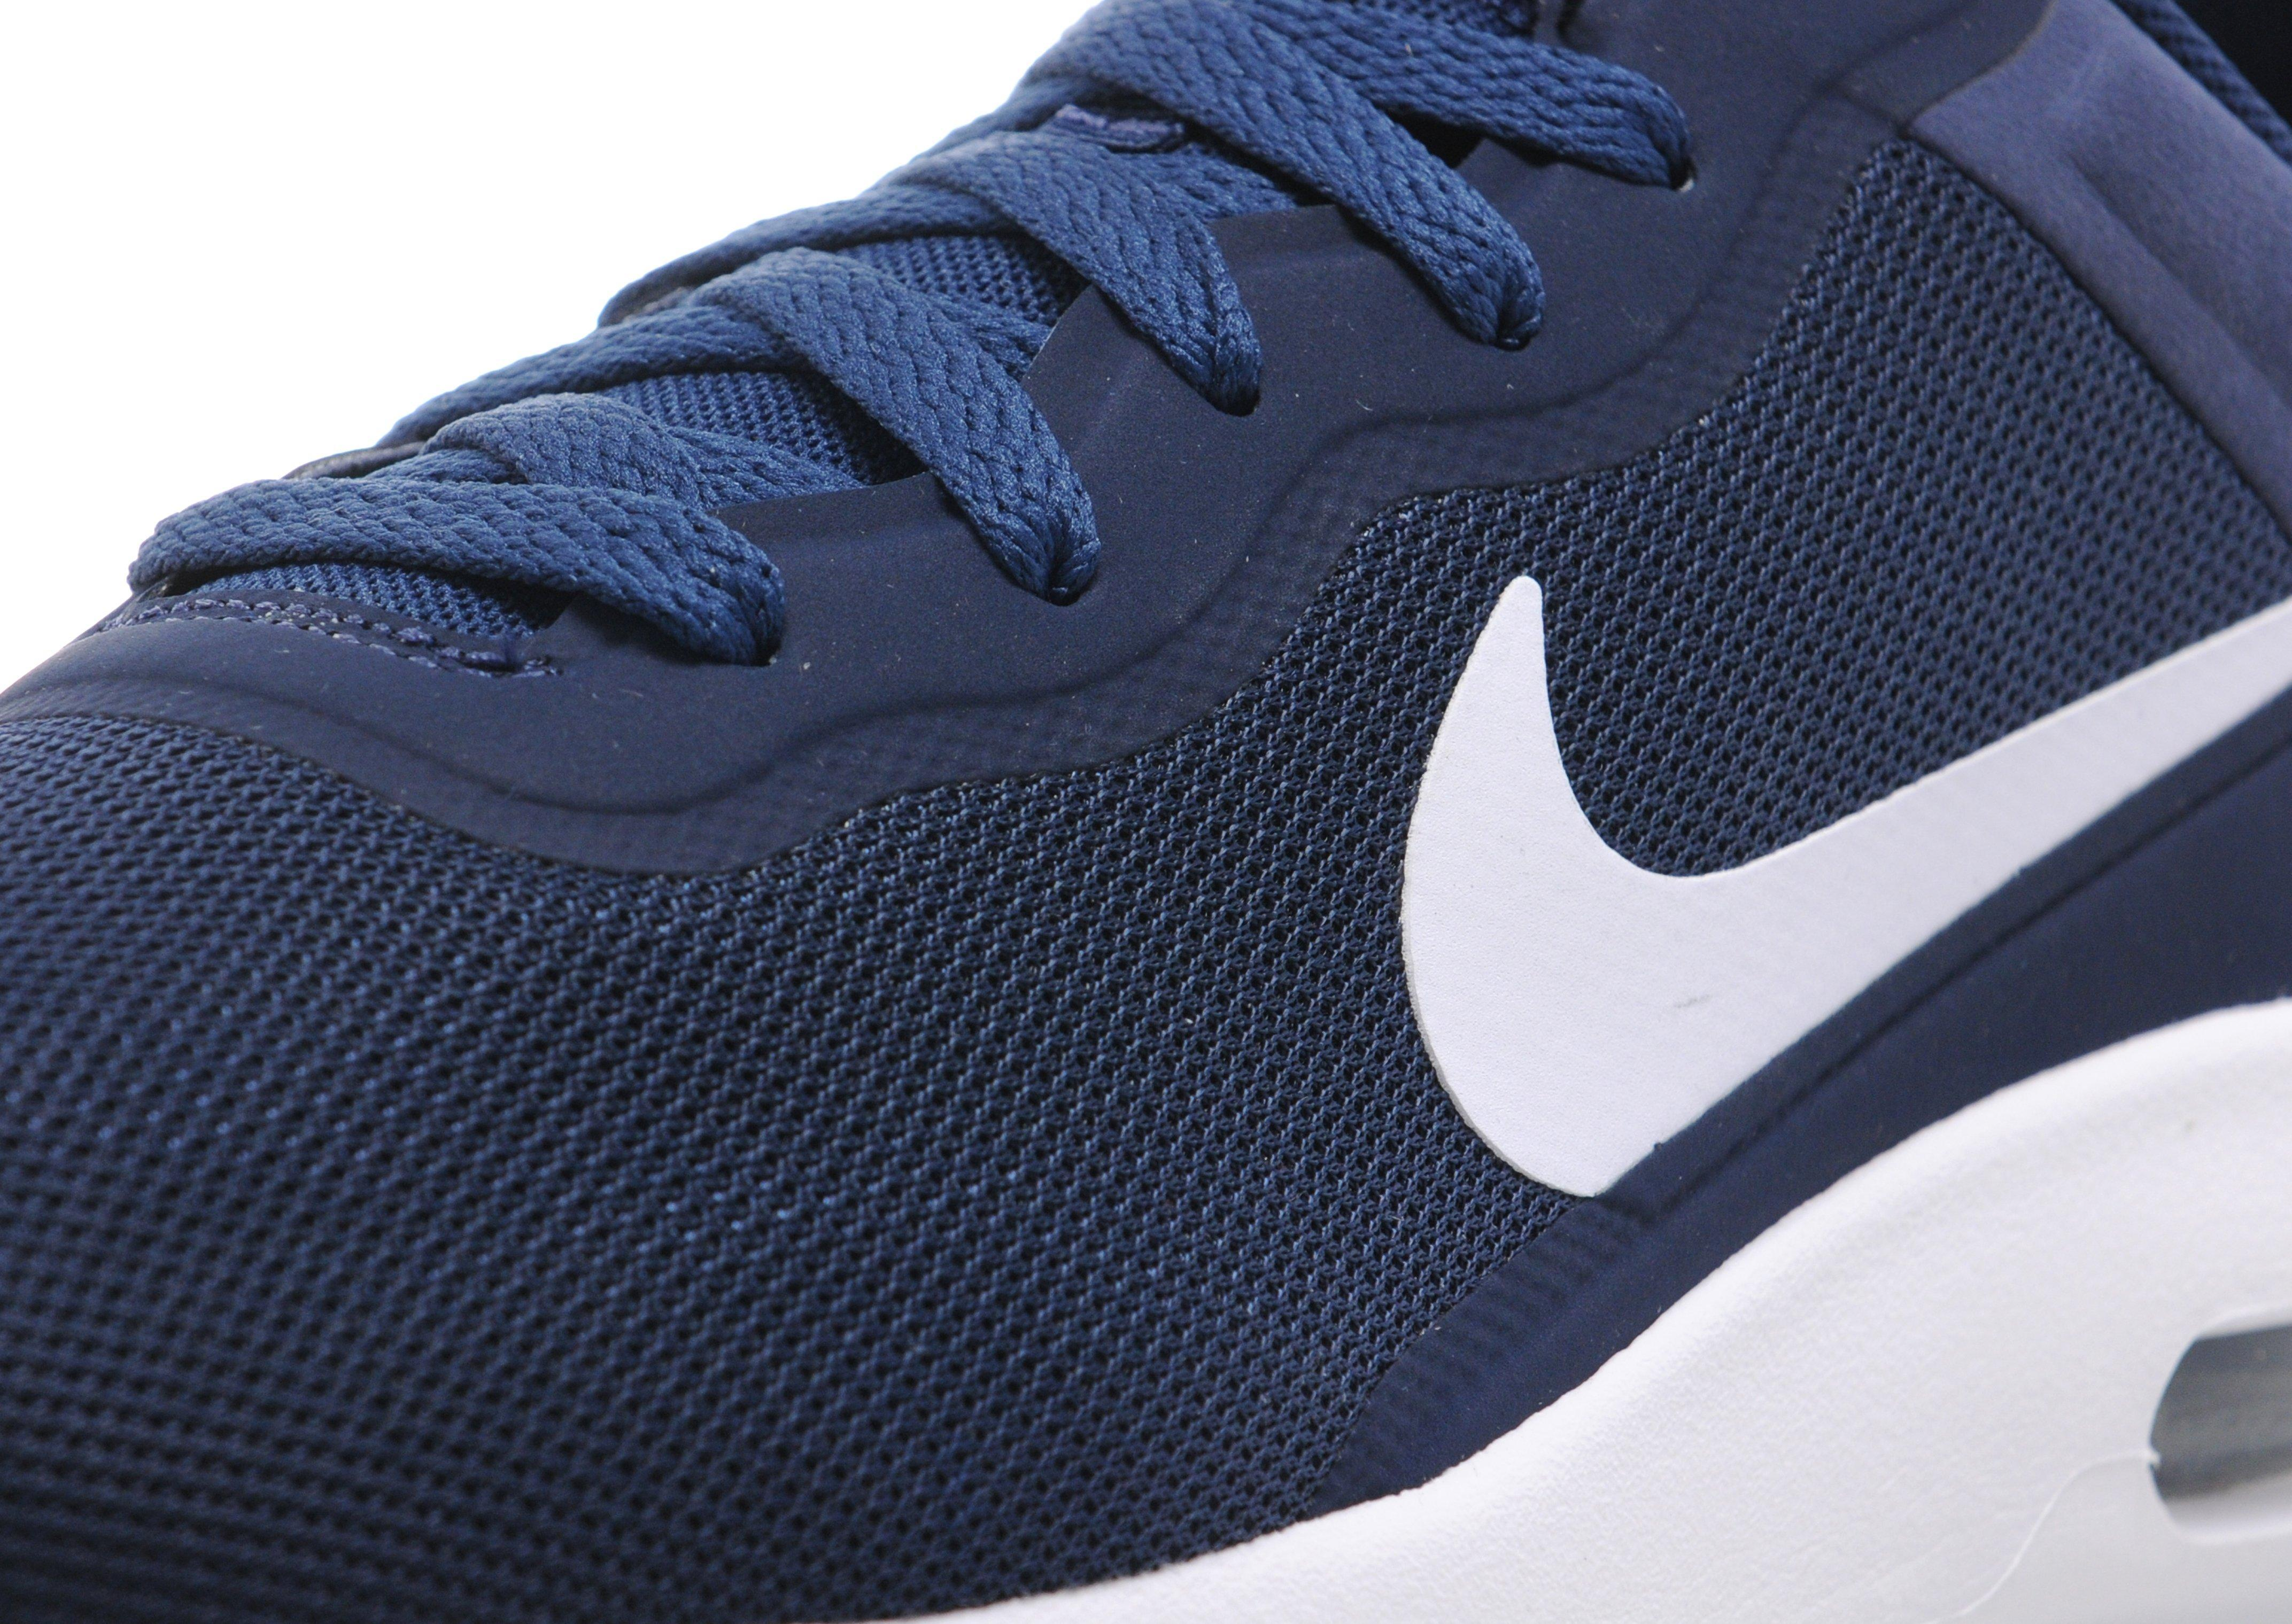 lyst nike air max modern essential in blue for men. Black Bedroom Furniture Sets. Home Design Ideas